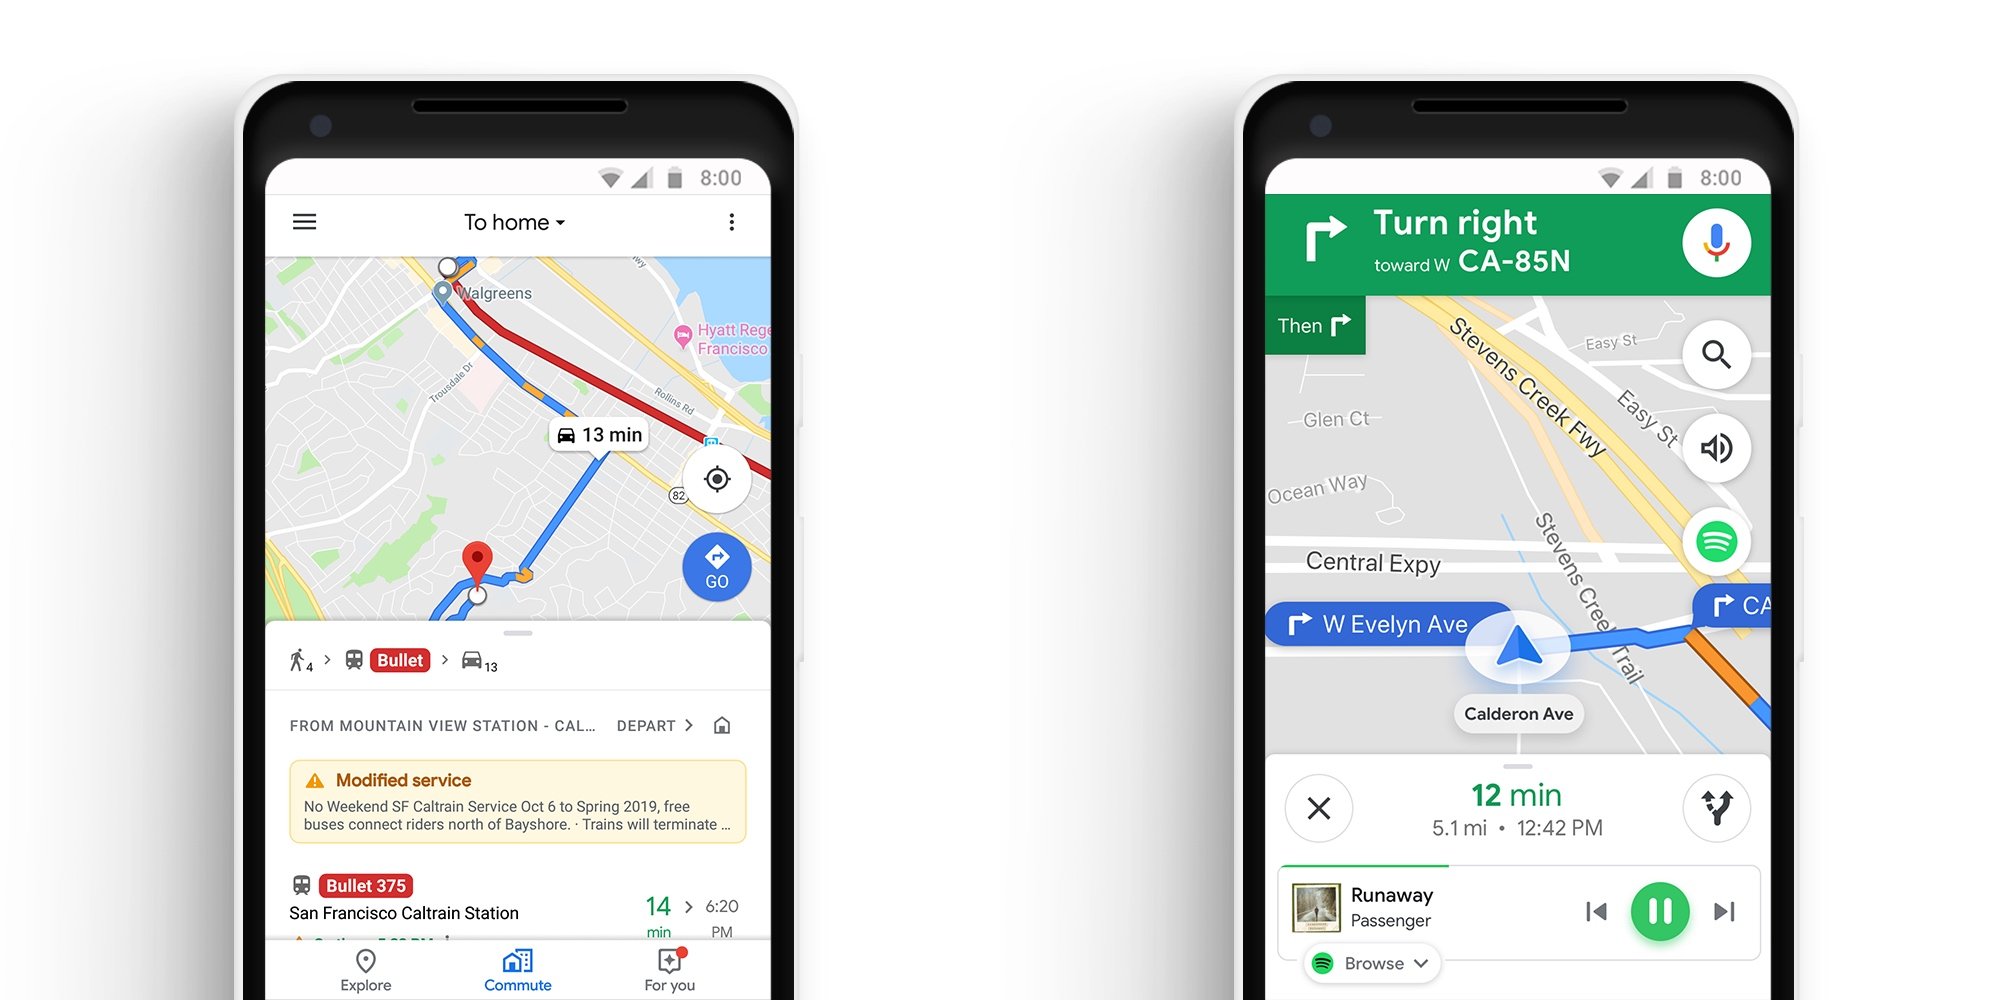 Google Maps adds 'Commute' tab and music controls | TechCrunch on google map art, google docs app, google app icon, google world app, google earth, gasbuddy app, google navigation app, traductor google app, weather app, google texting app, google circles app, google mapquest, google search app, craigslist app, evernote app, google calendar, google map turkey, google map from to, google books app,